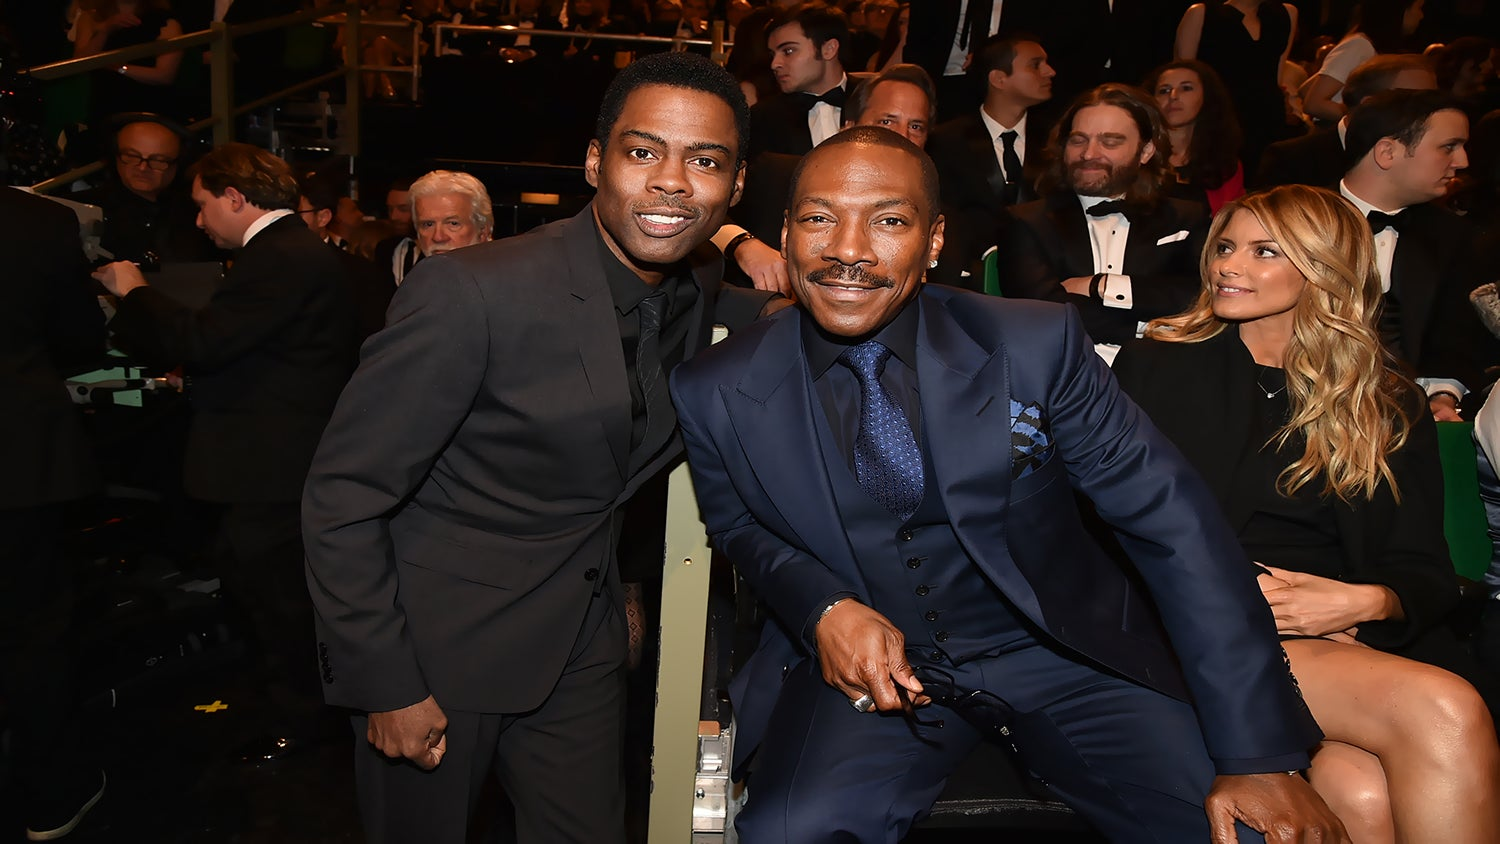 Chris Rock Pays Homage to Eddie Murphy at SNL 40th Anniversary